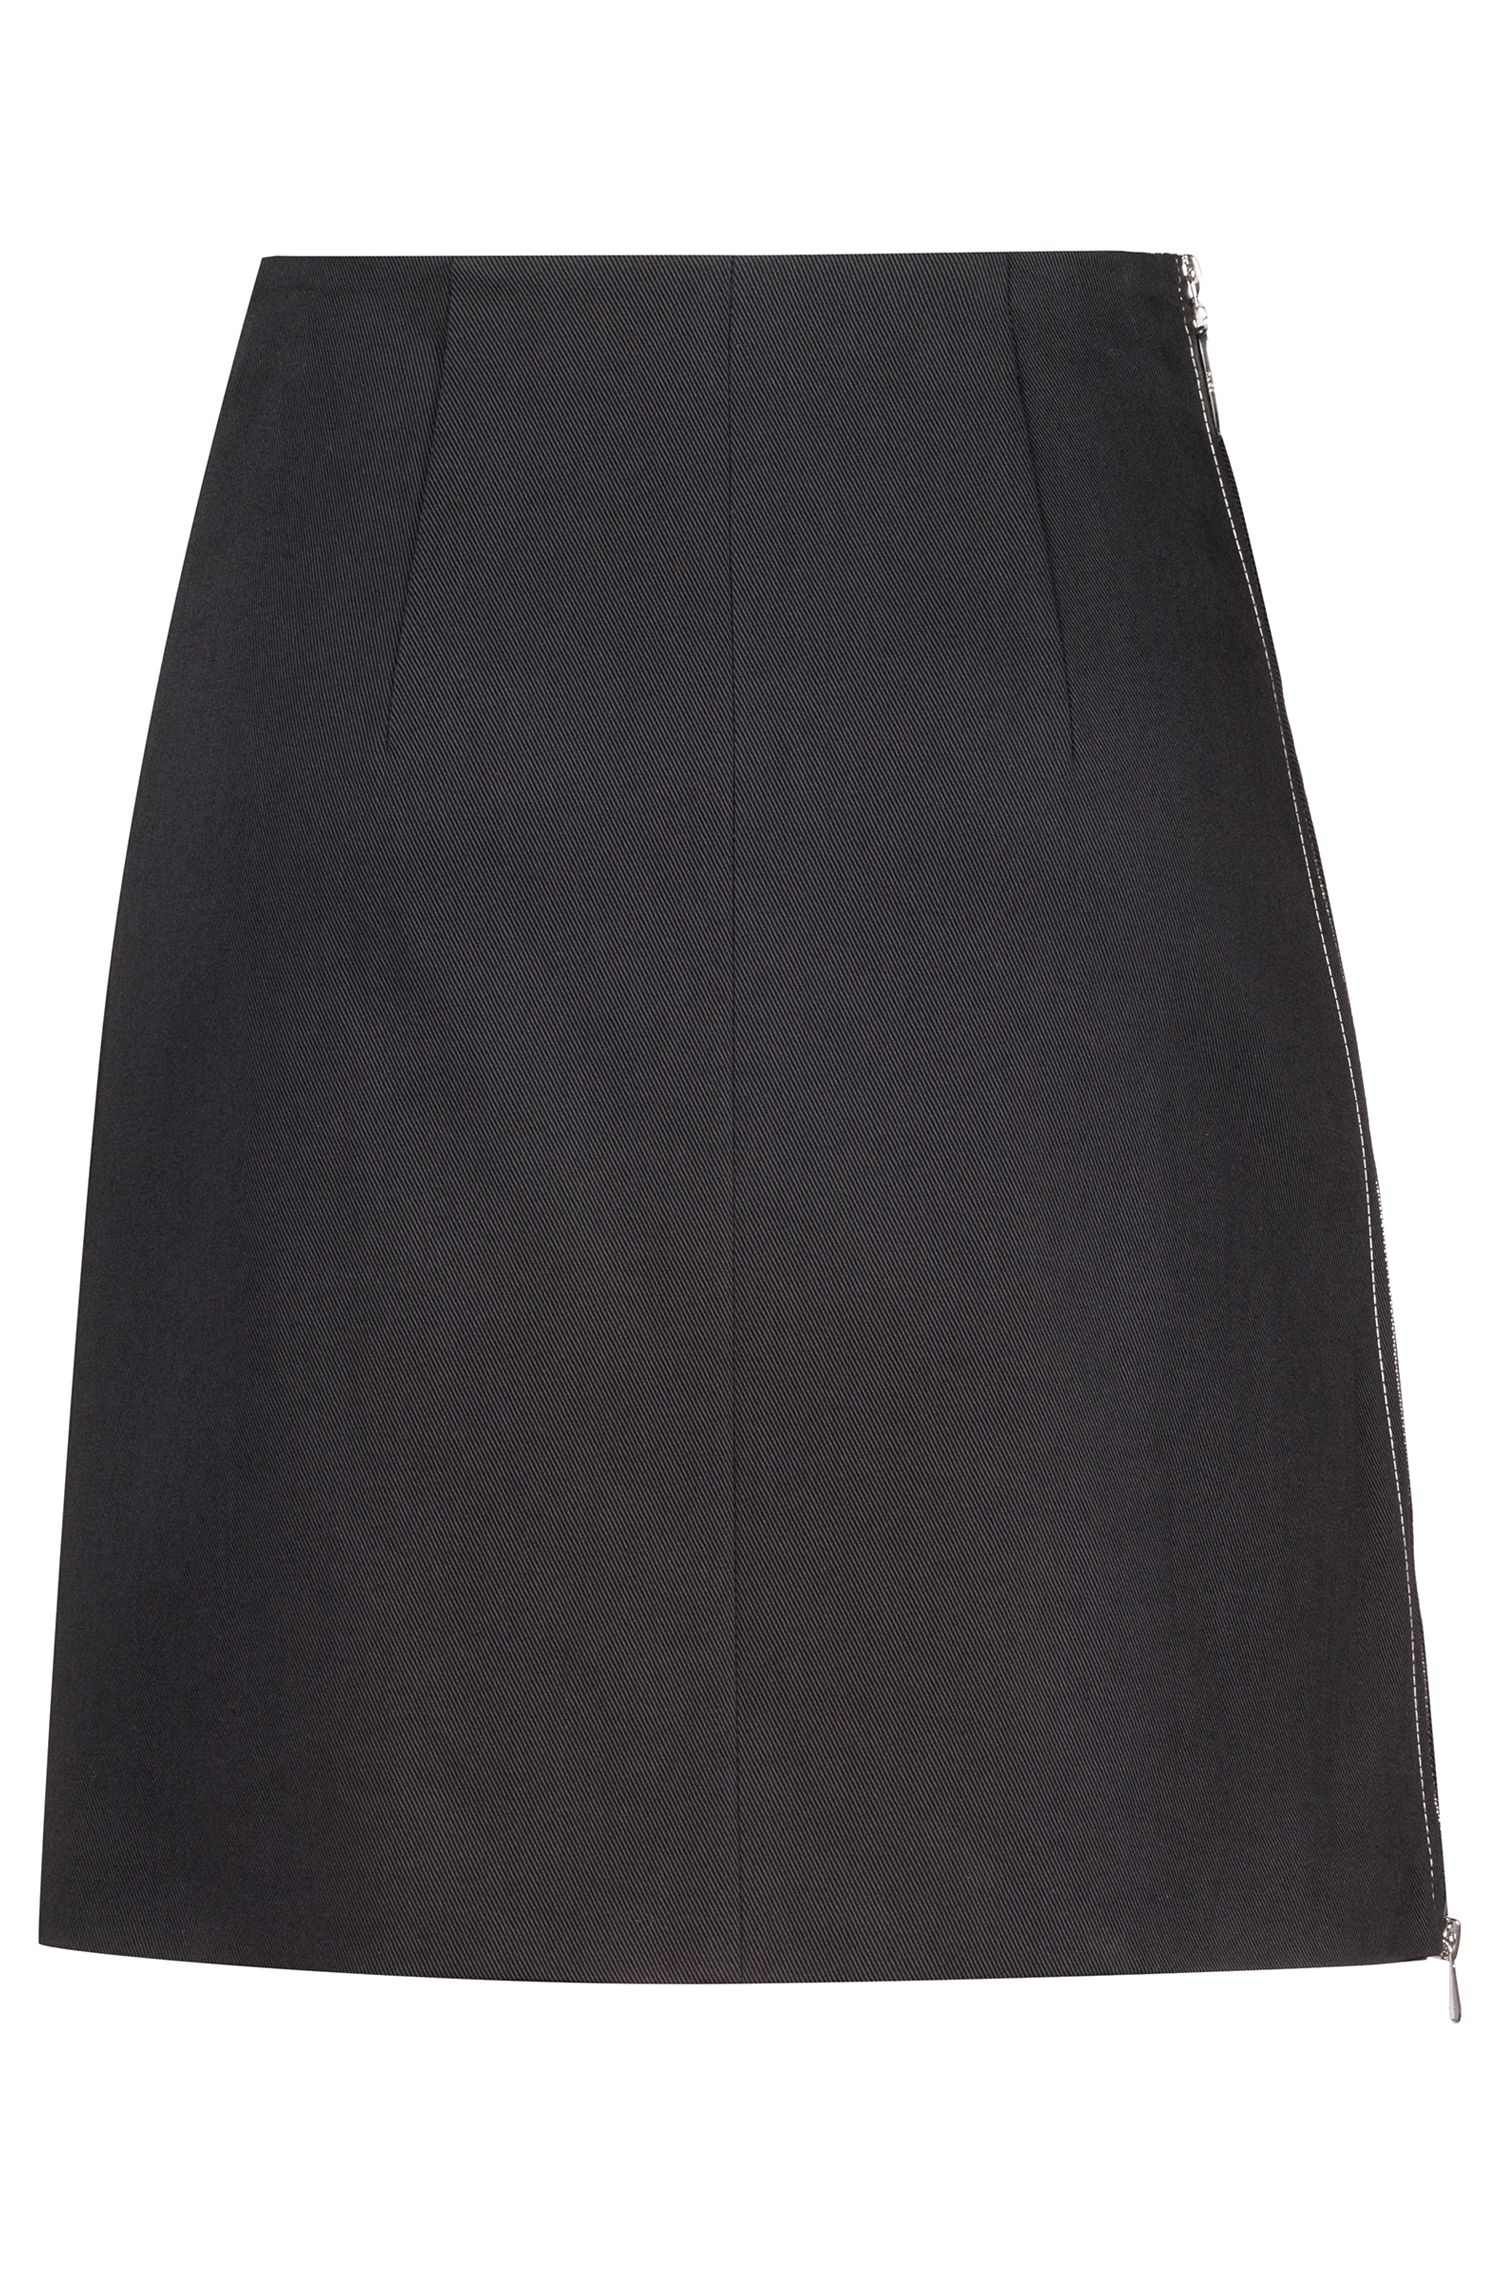 Miniskirt in stretch cotton with two-way side zip, Black